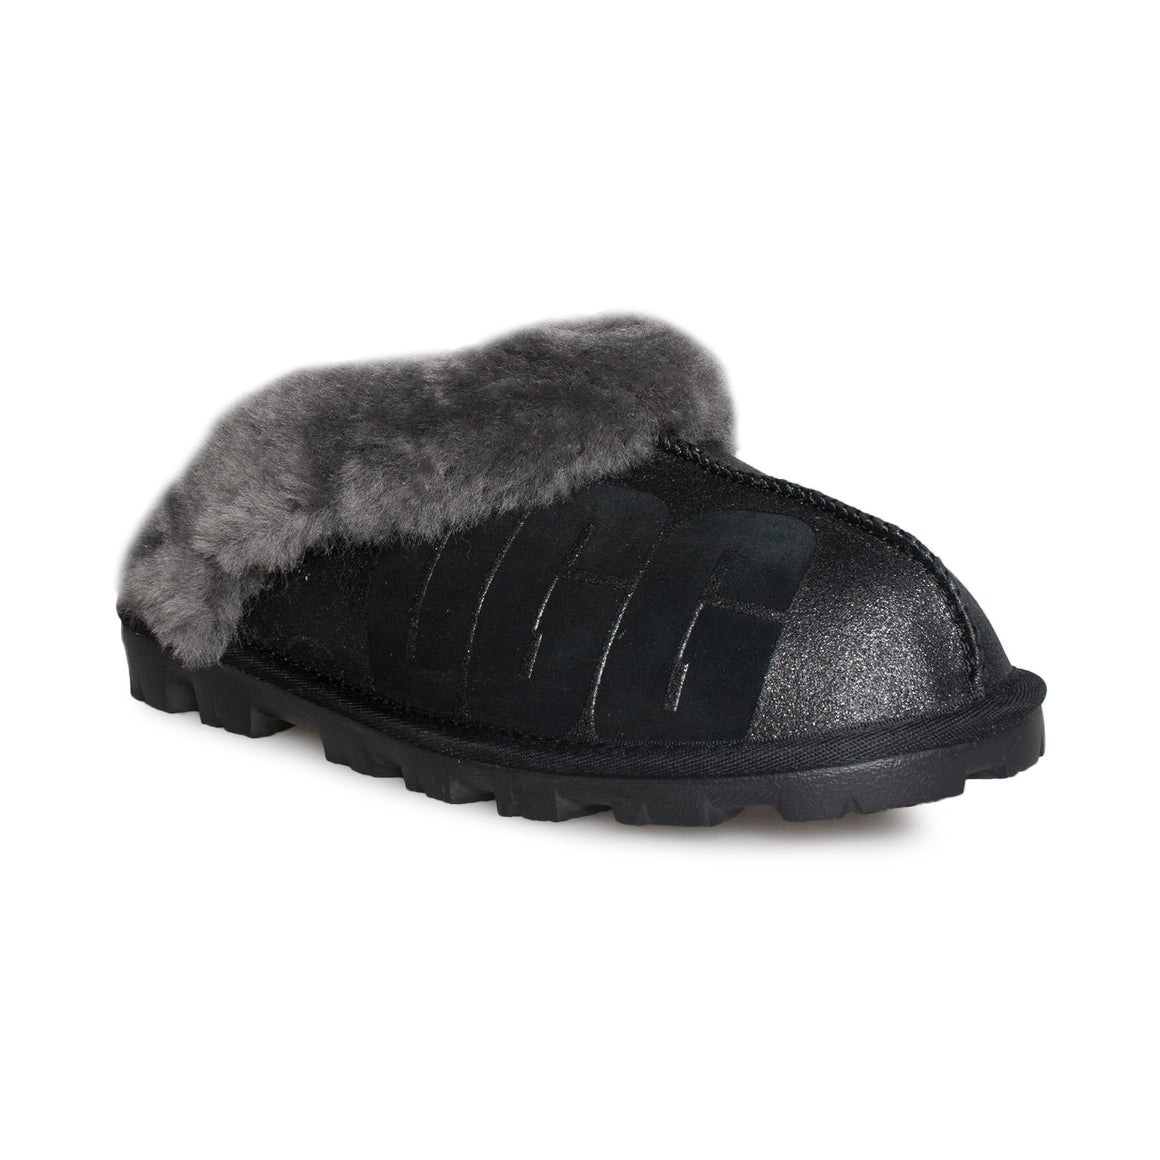 UGG Coquette Sparkle Black Slippers - Women's